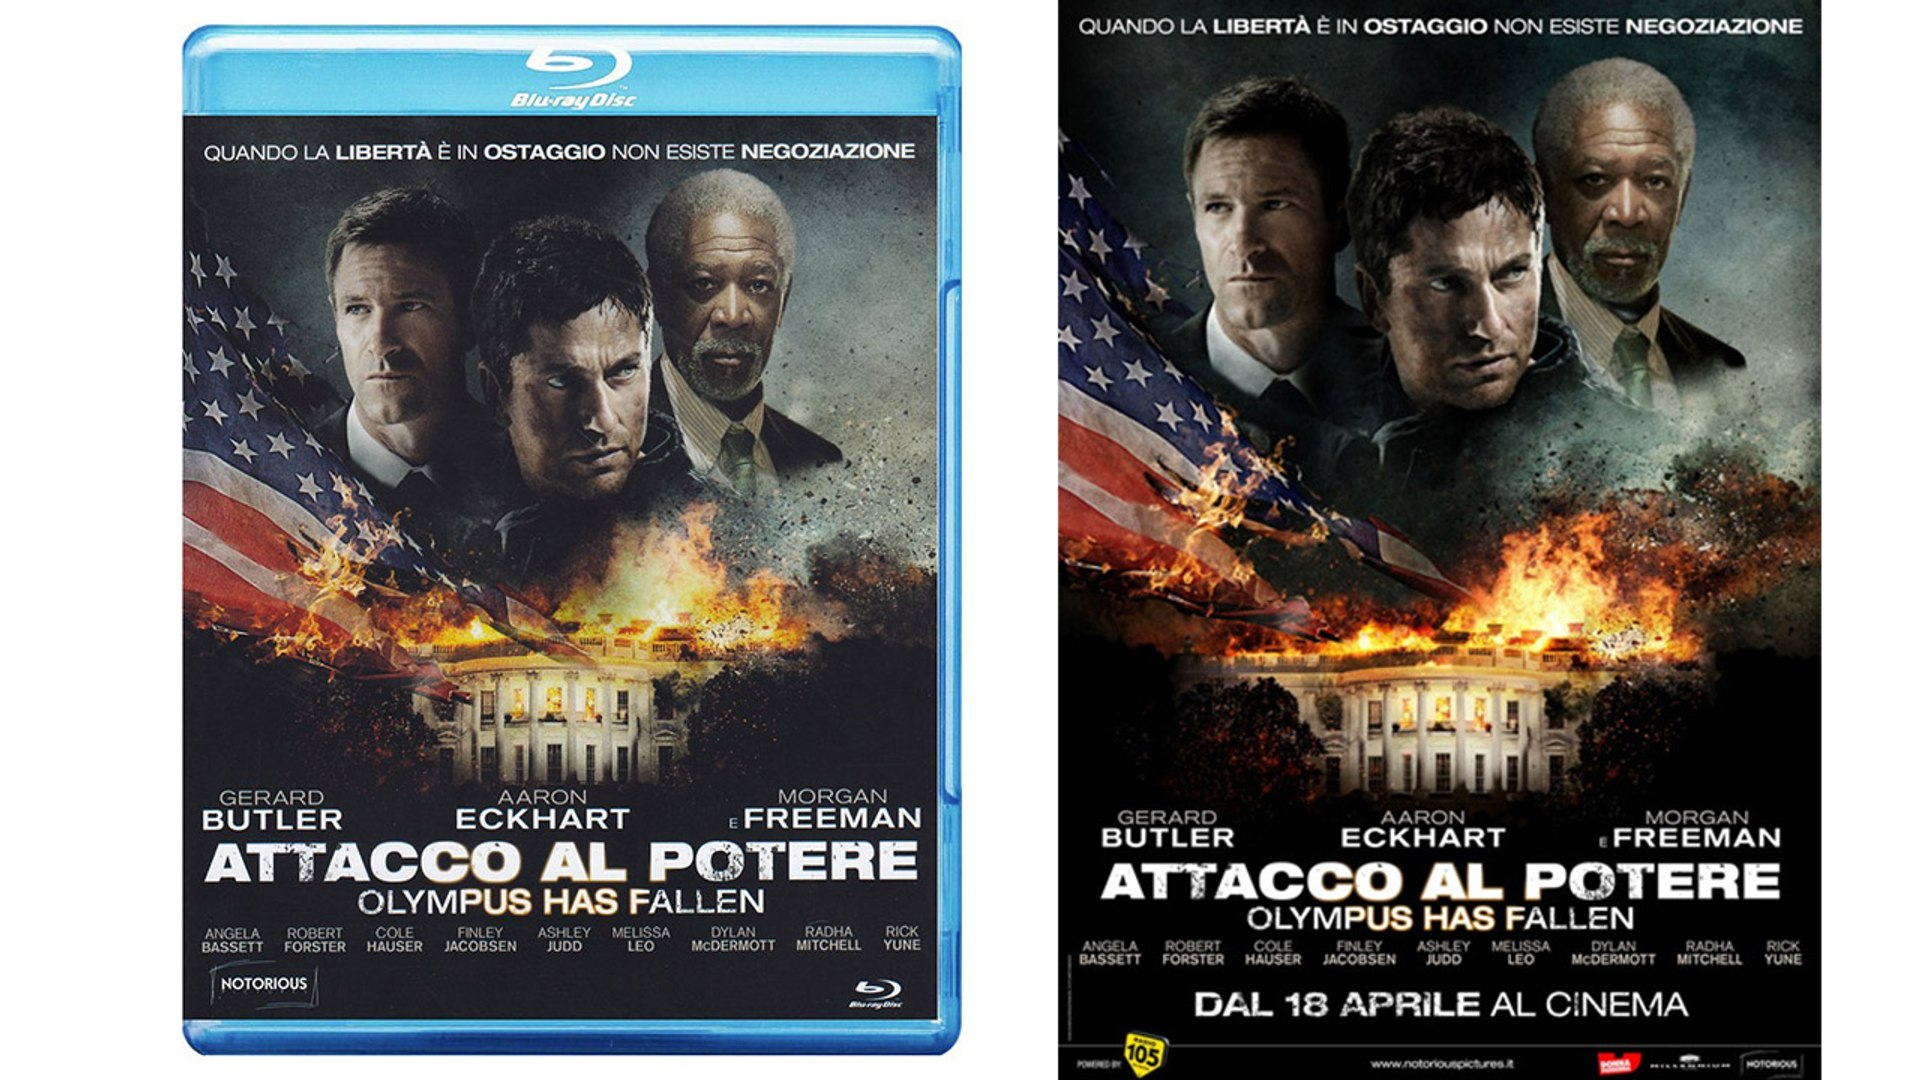 ATTACCO AL POTERE - OLYMPUS HAS FALLEN 2013 ITA Streaming - Video  Dailymotion